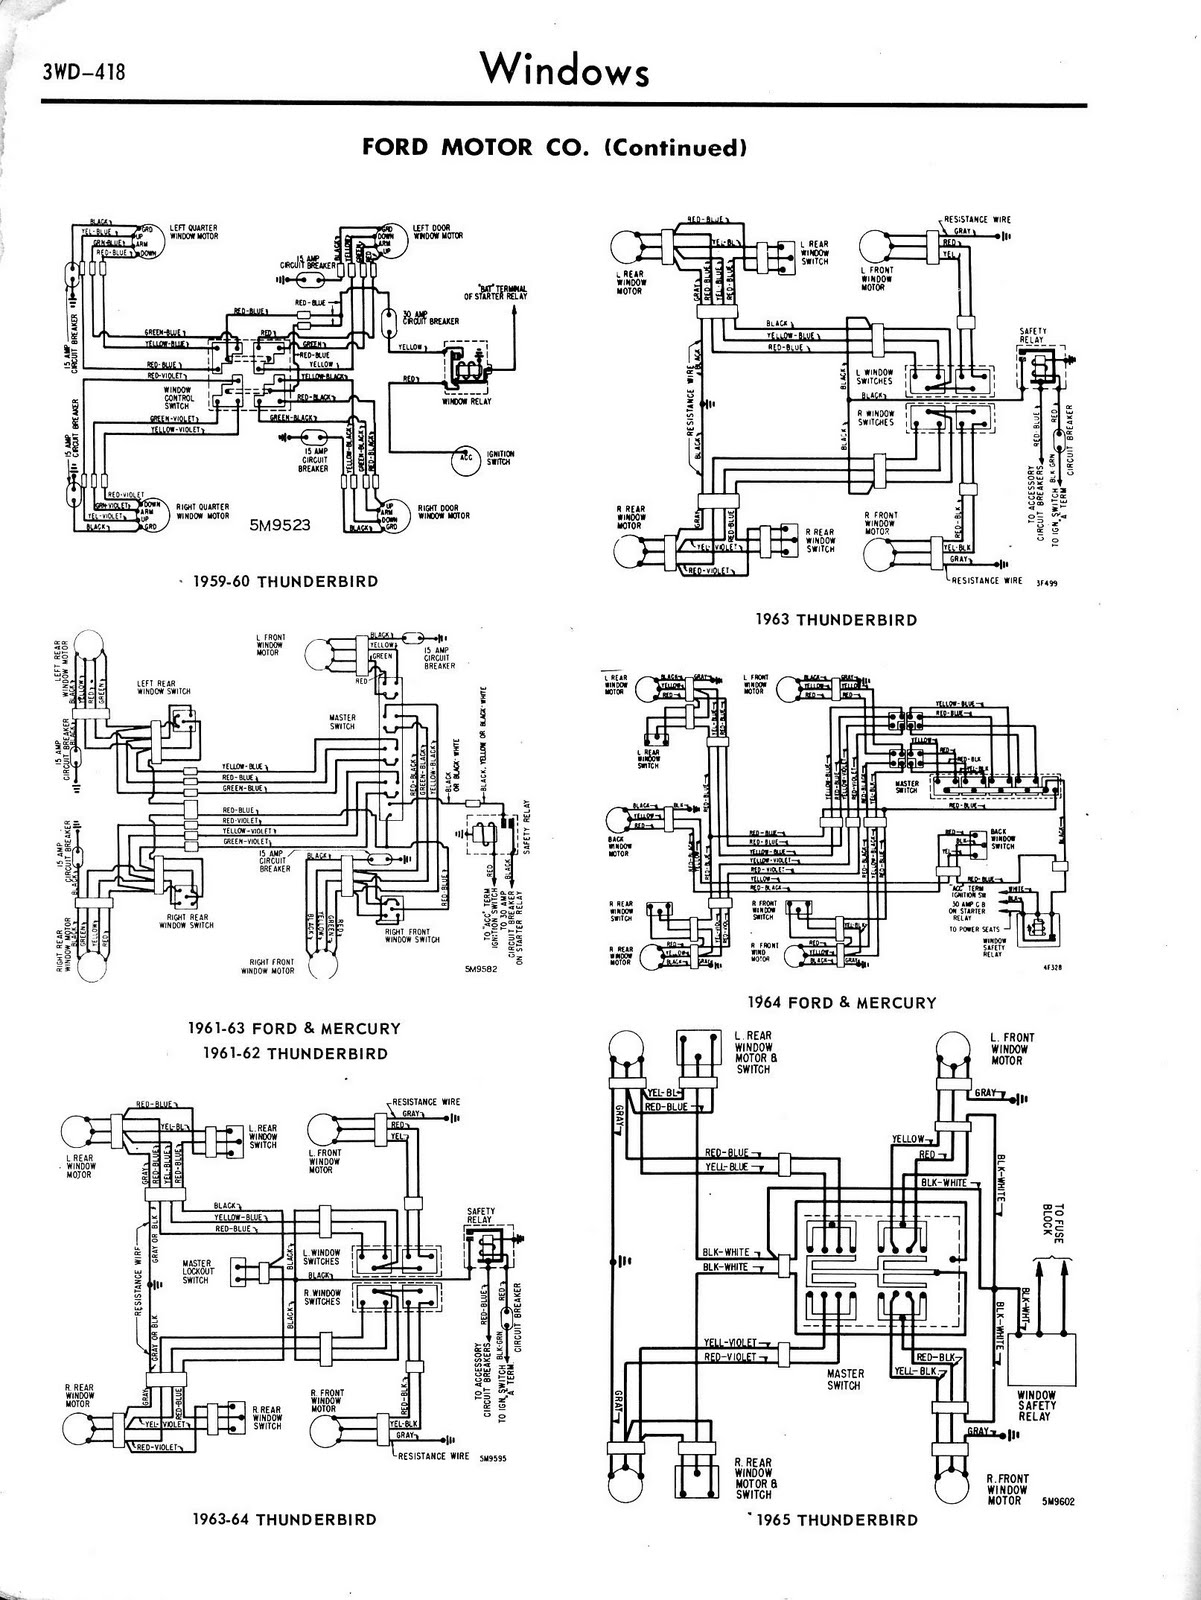 ford 6 cylinder engine diagram in addition mustang gt vacuum ford 6 cylinder engine diagram in addition mustang gt vacuum diagram diagram moreover ford 6 cylinder